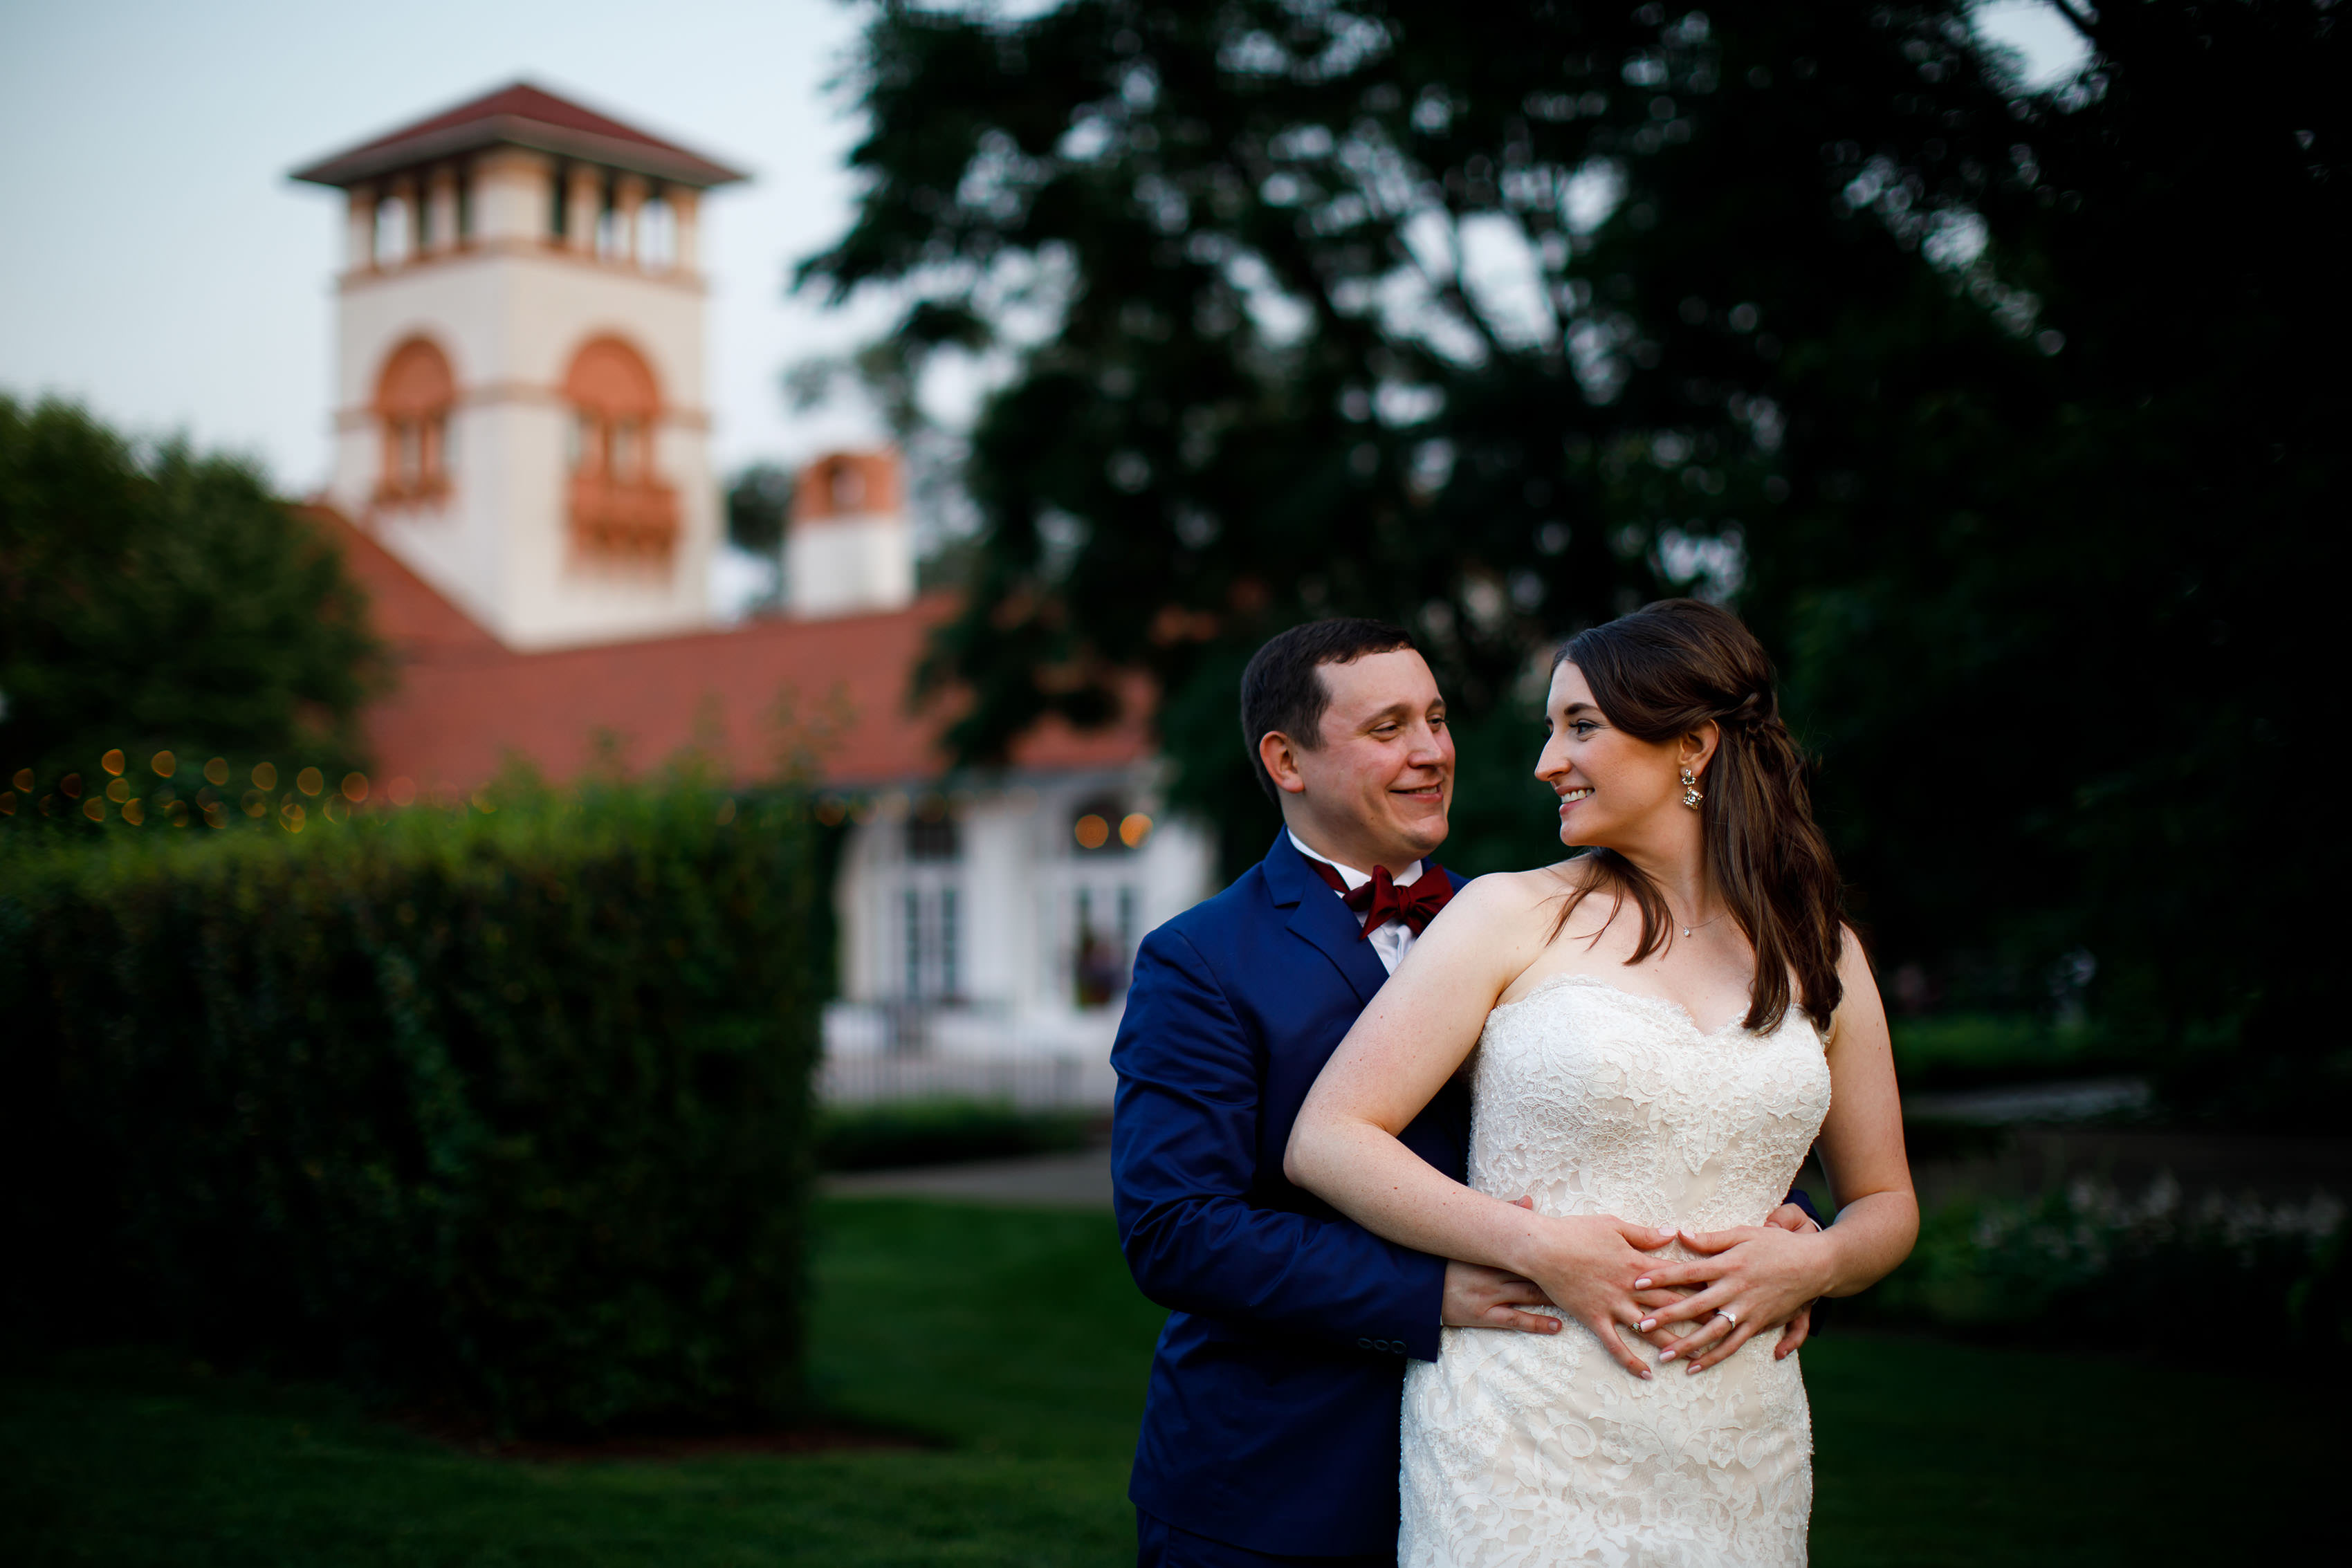 The newleyweds pose for a portrait during their Ravisloe Country Club wedding in Homewood Illinois